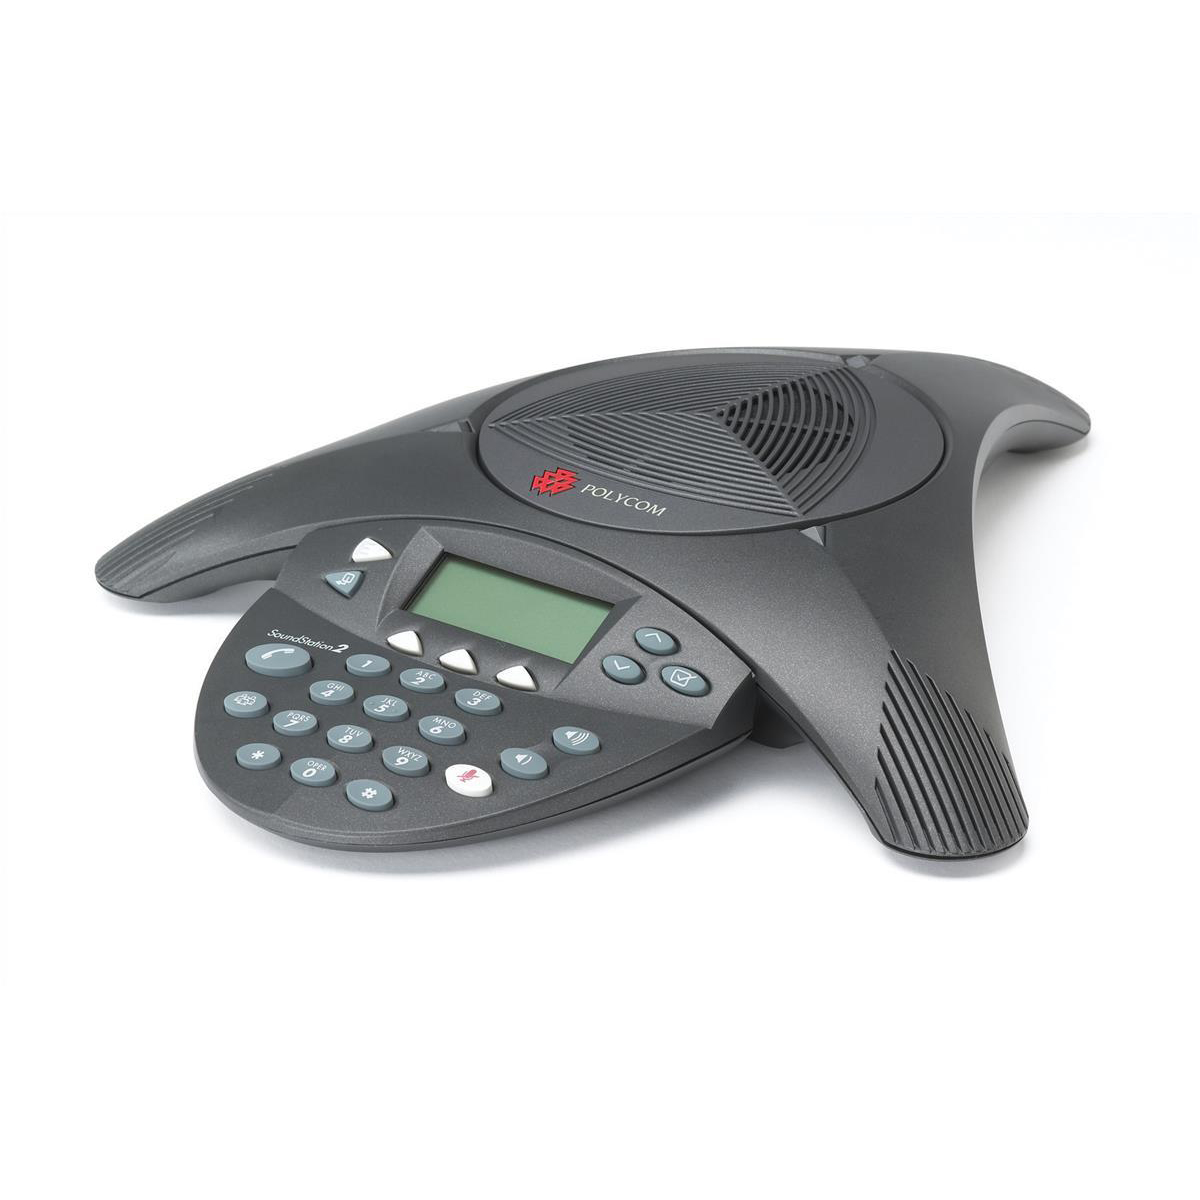 Phone handsets Polycom SoundStation2 Conference Phone Anti-Echo Full Duplex 8-10 Users 360 Deg Pickup Ref PB-PO2